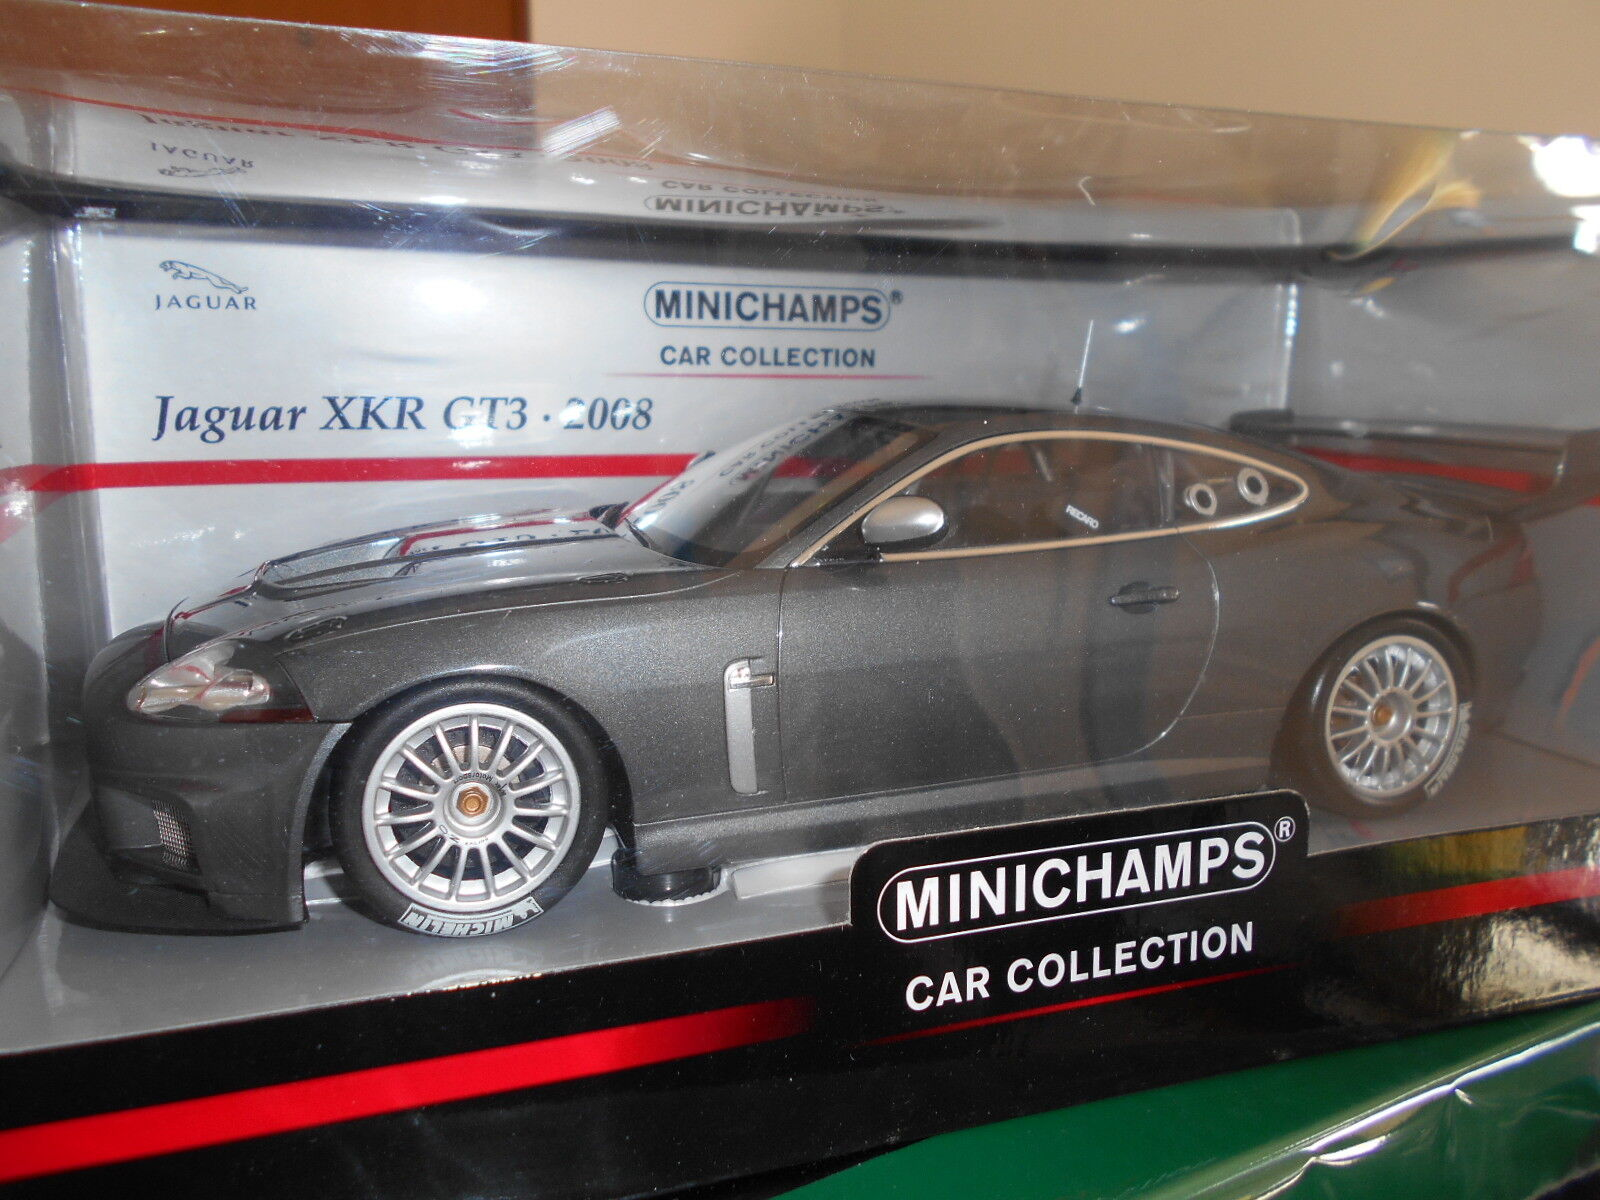 MIN150081390 by MINICHAMPS JAGUAR XKR GT3 2008 1 18